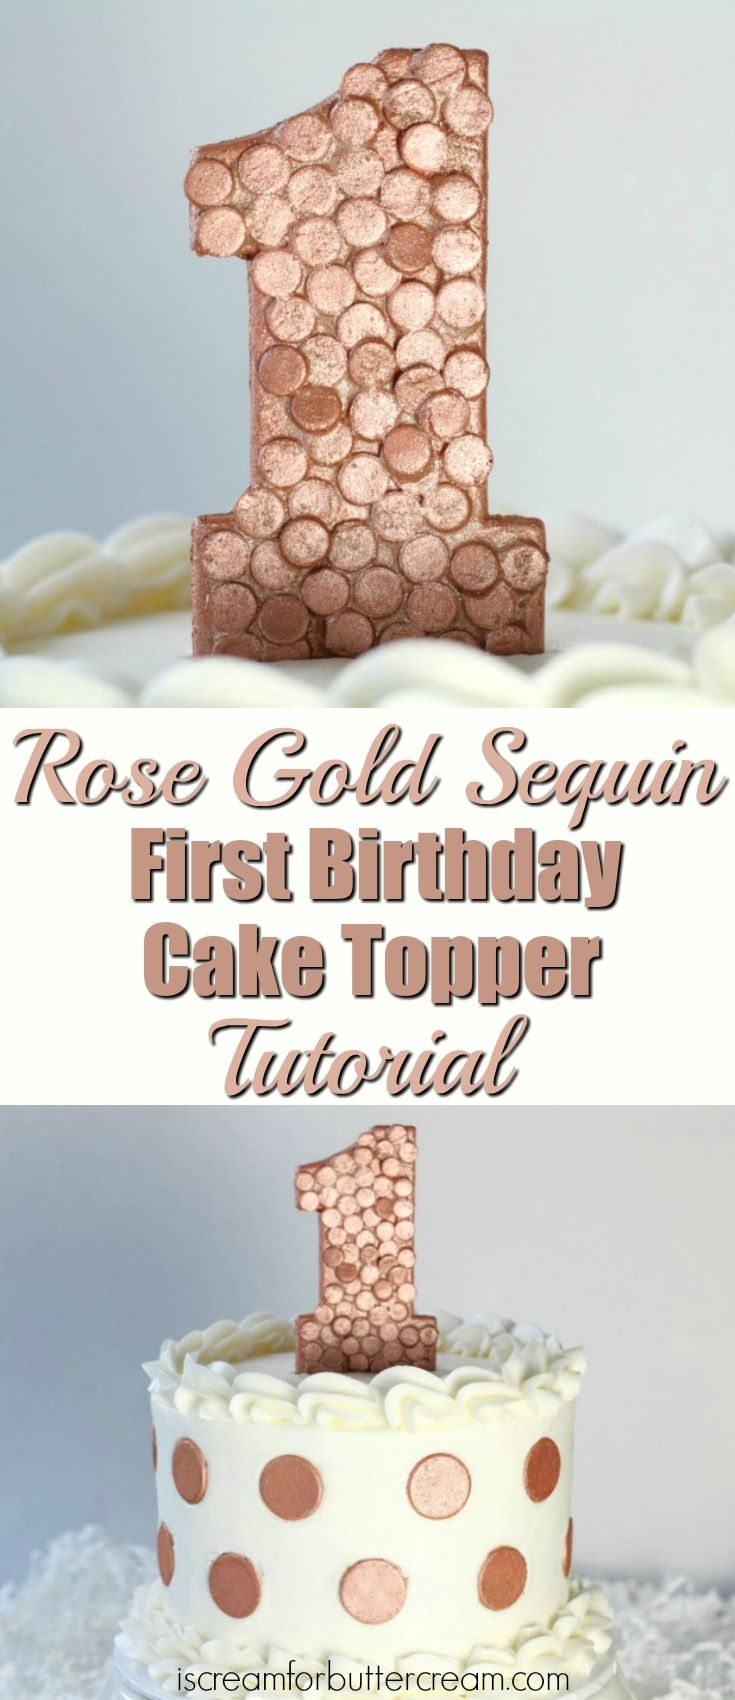 Cute Rose Gold Sequin First Birthday Cake Topper These 3 DIY Toppers For Girls Are Such A Quick And Easy Way To Decorate